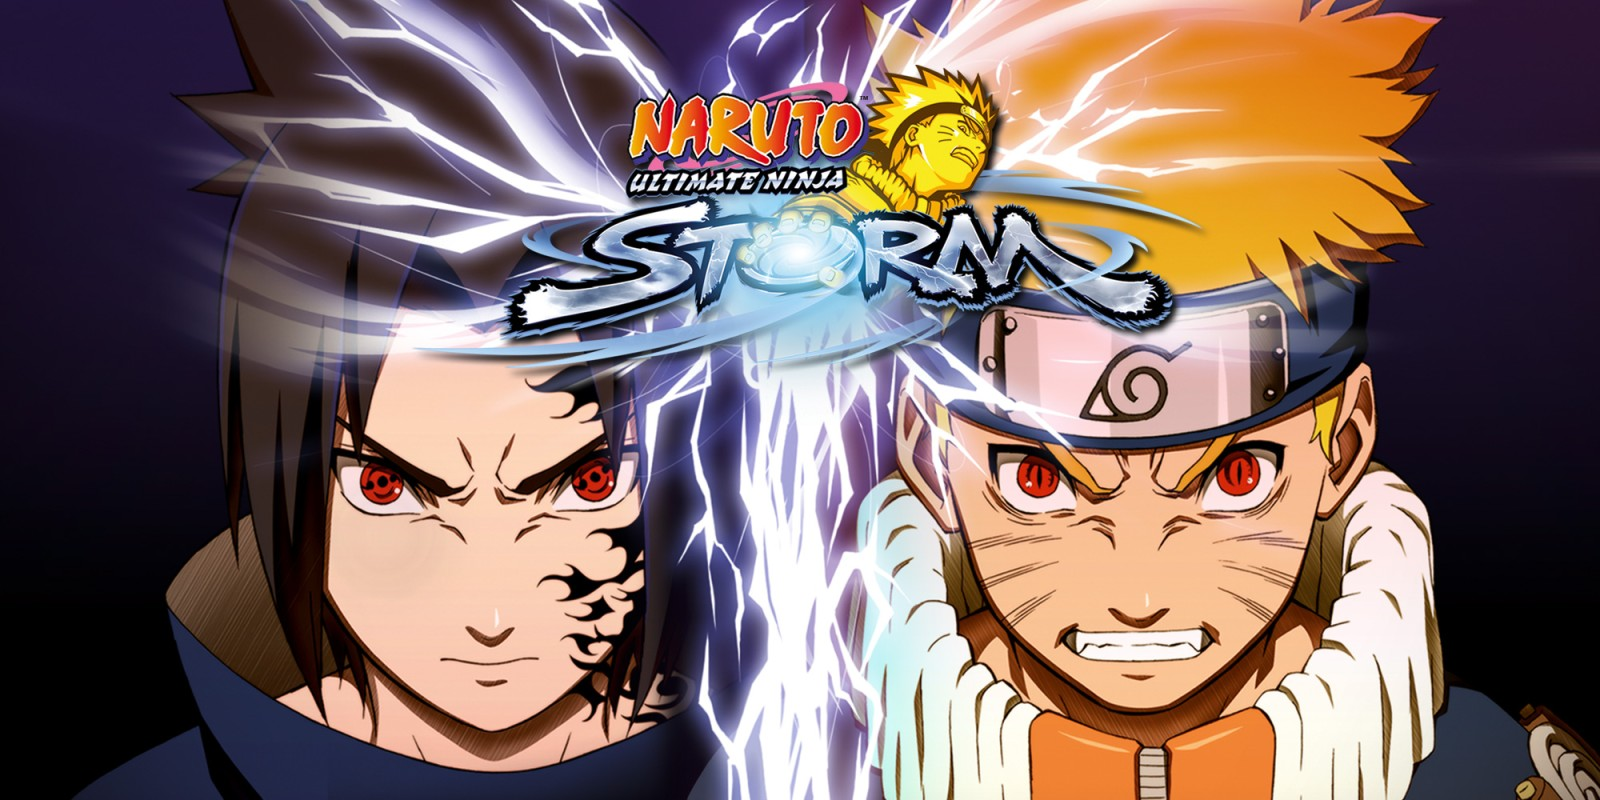 telecharger naruto ultimate ninja heroes apk